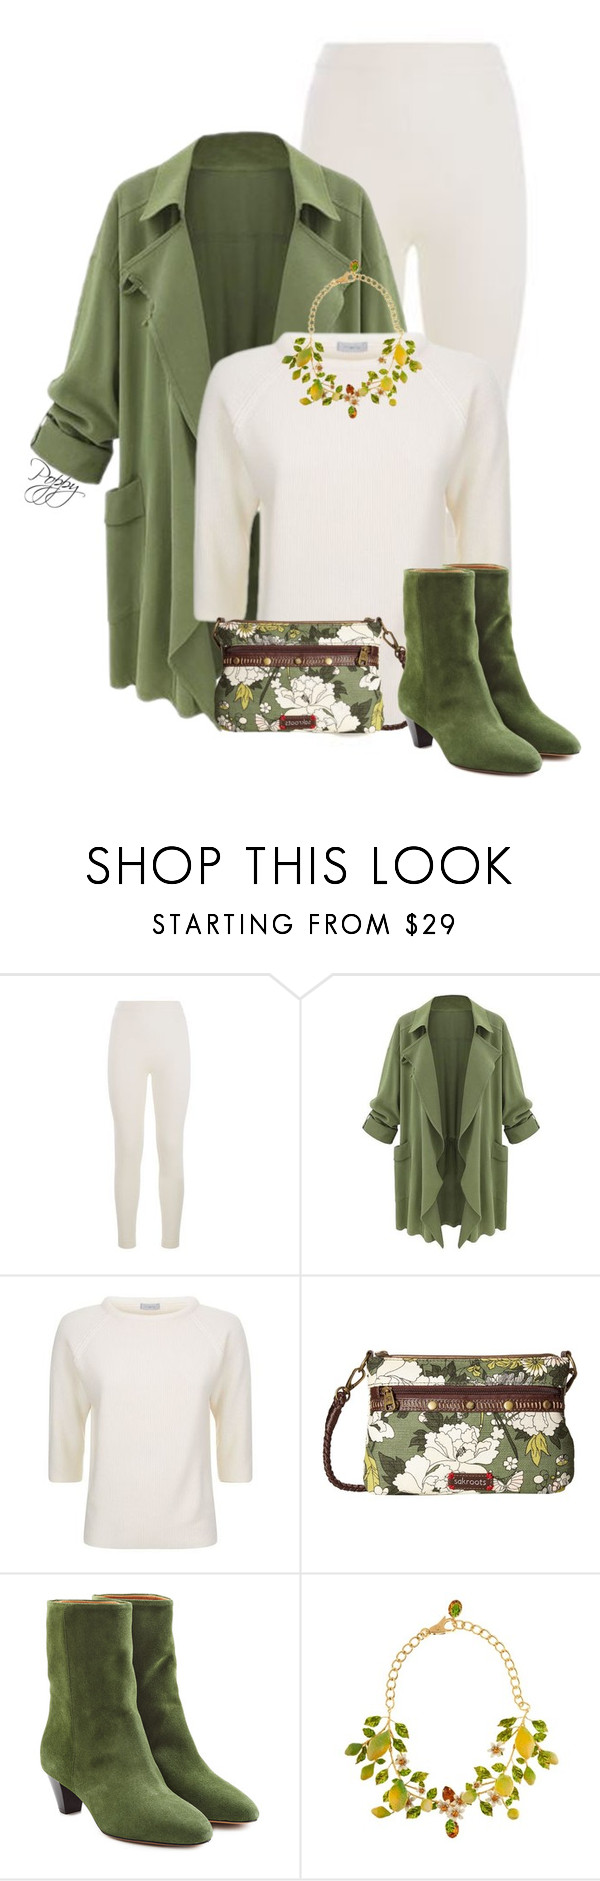 """""""Ready for Spring"""" by bainbridgegal ❤ liked on Polyvore featuring malo, Sakroots, Étoile Isabel Marant and Dolce&Gabbana"""